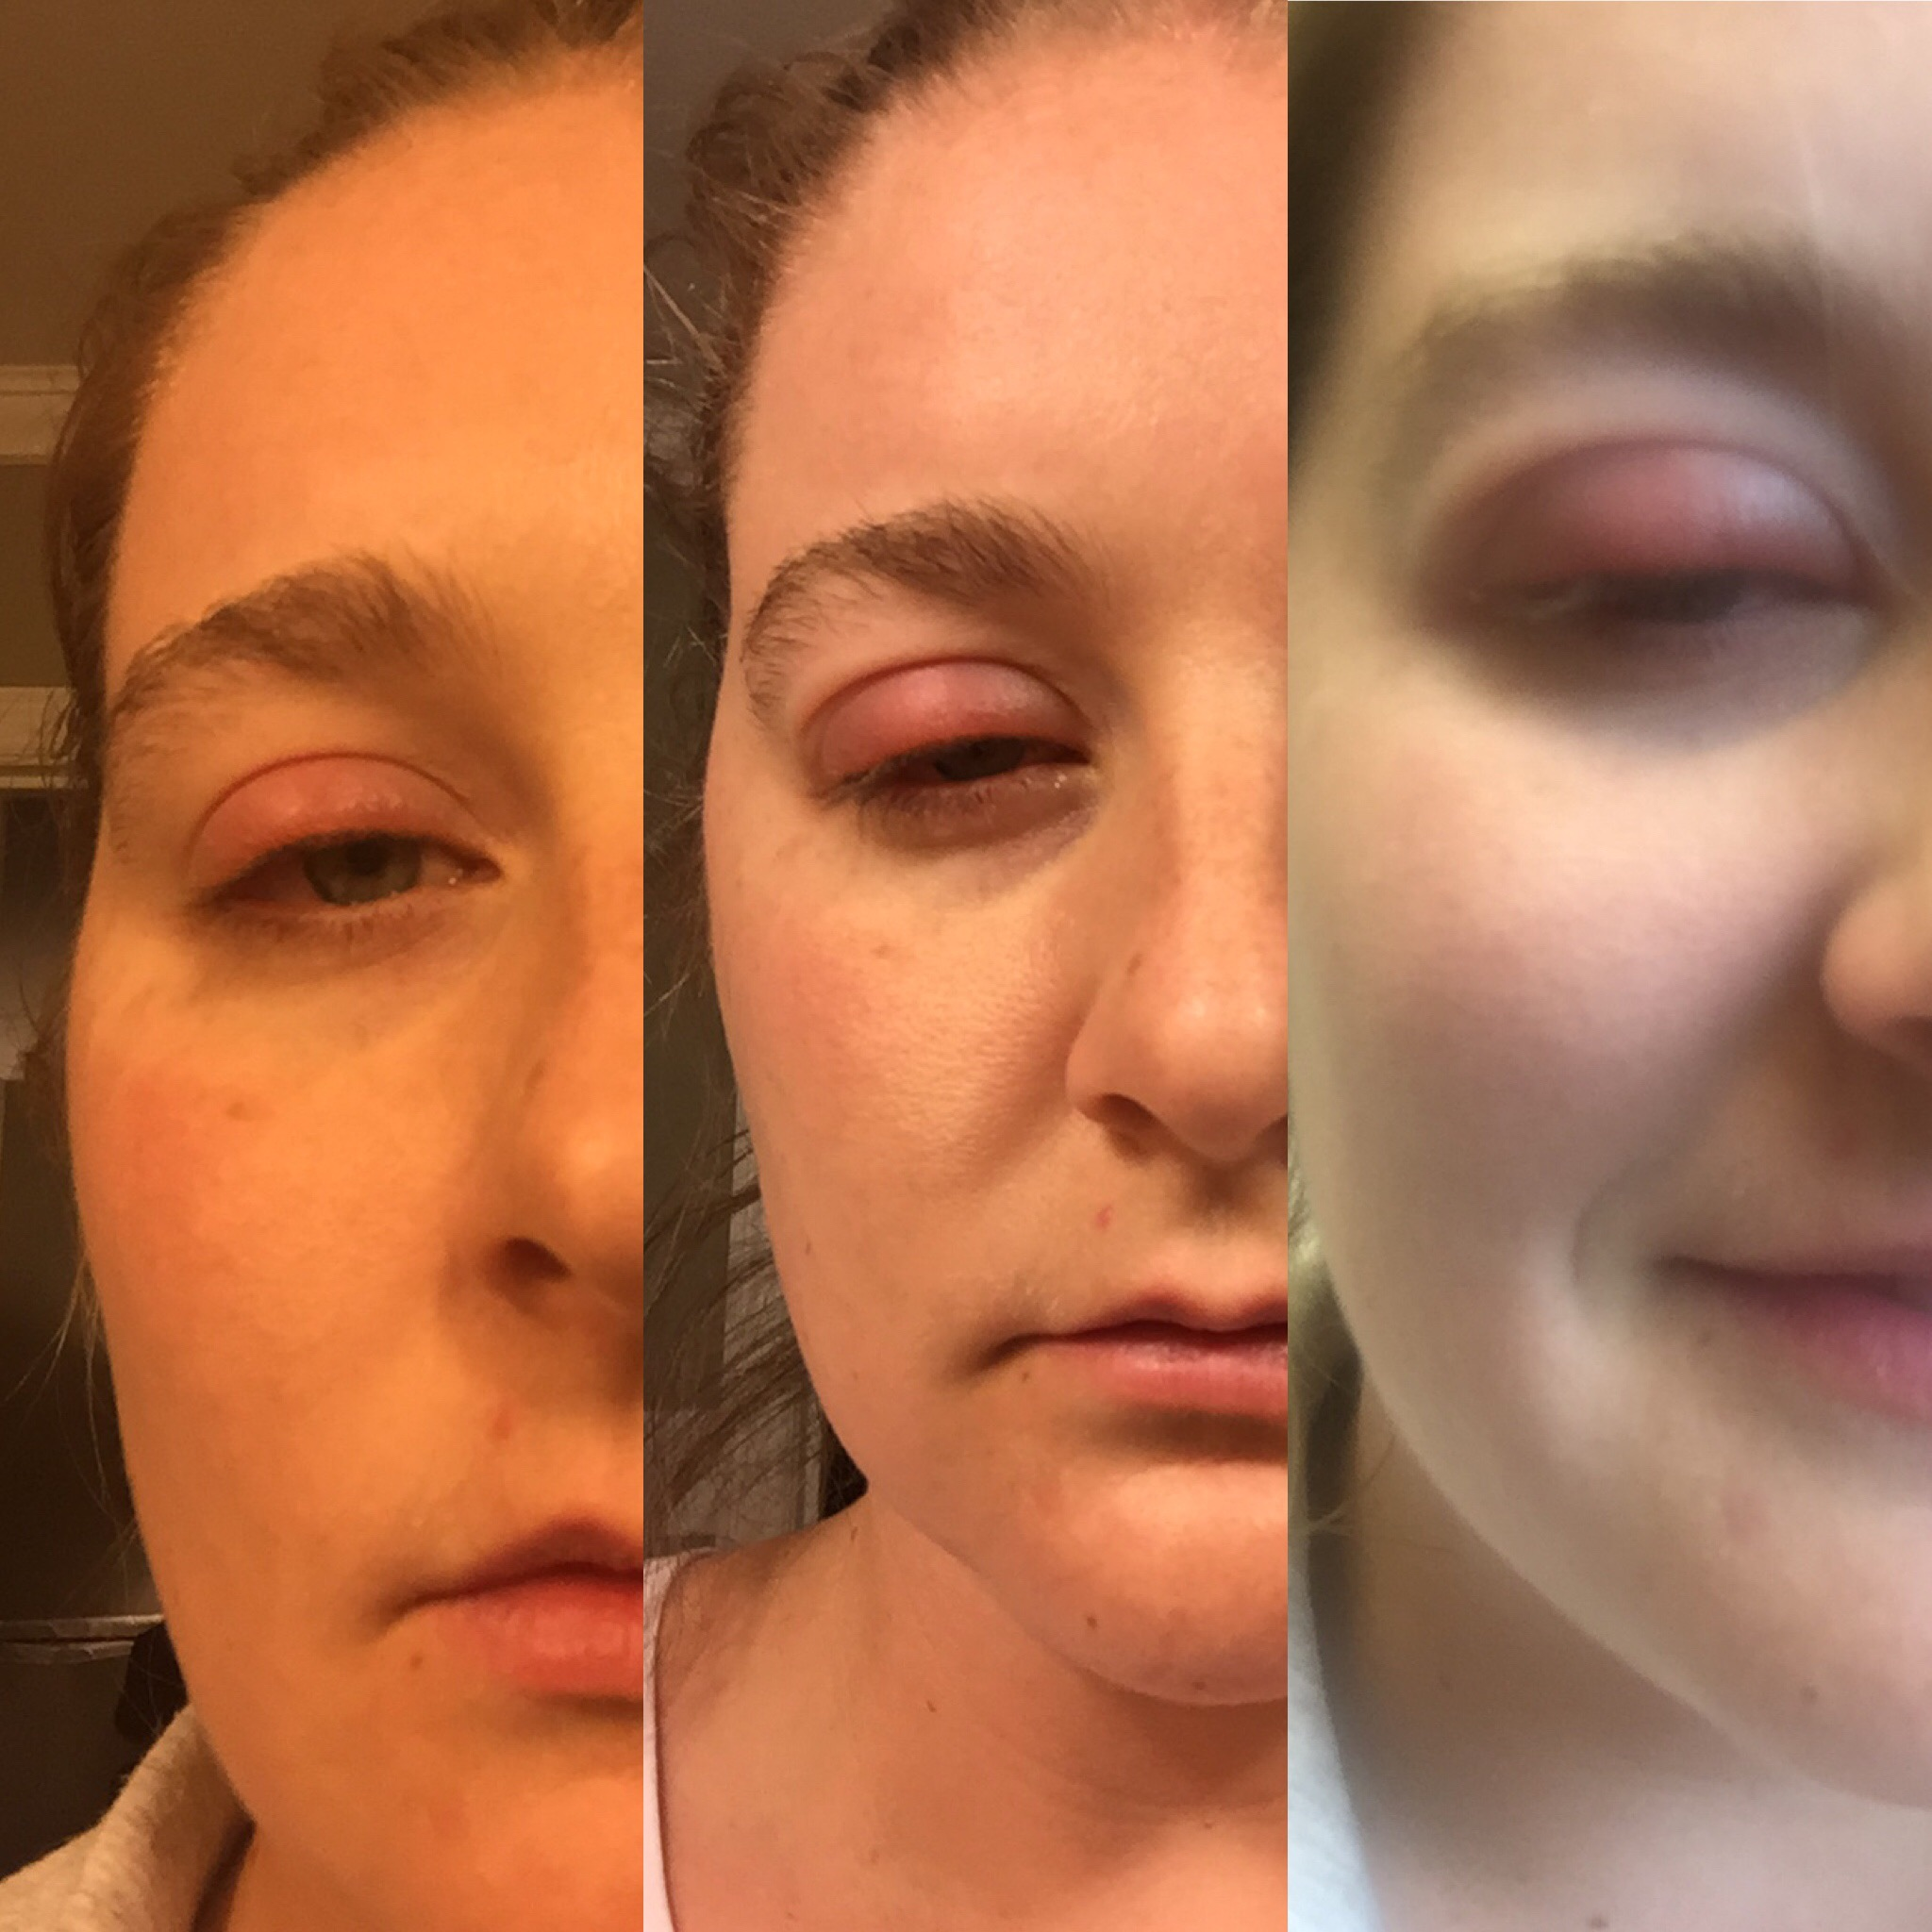 This is a 24hr progression... dang! 'Scuse the brows!